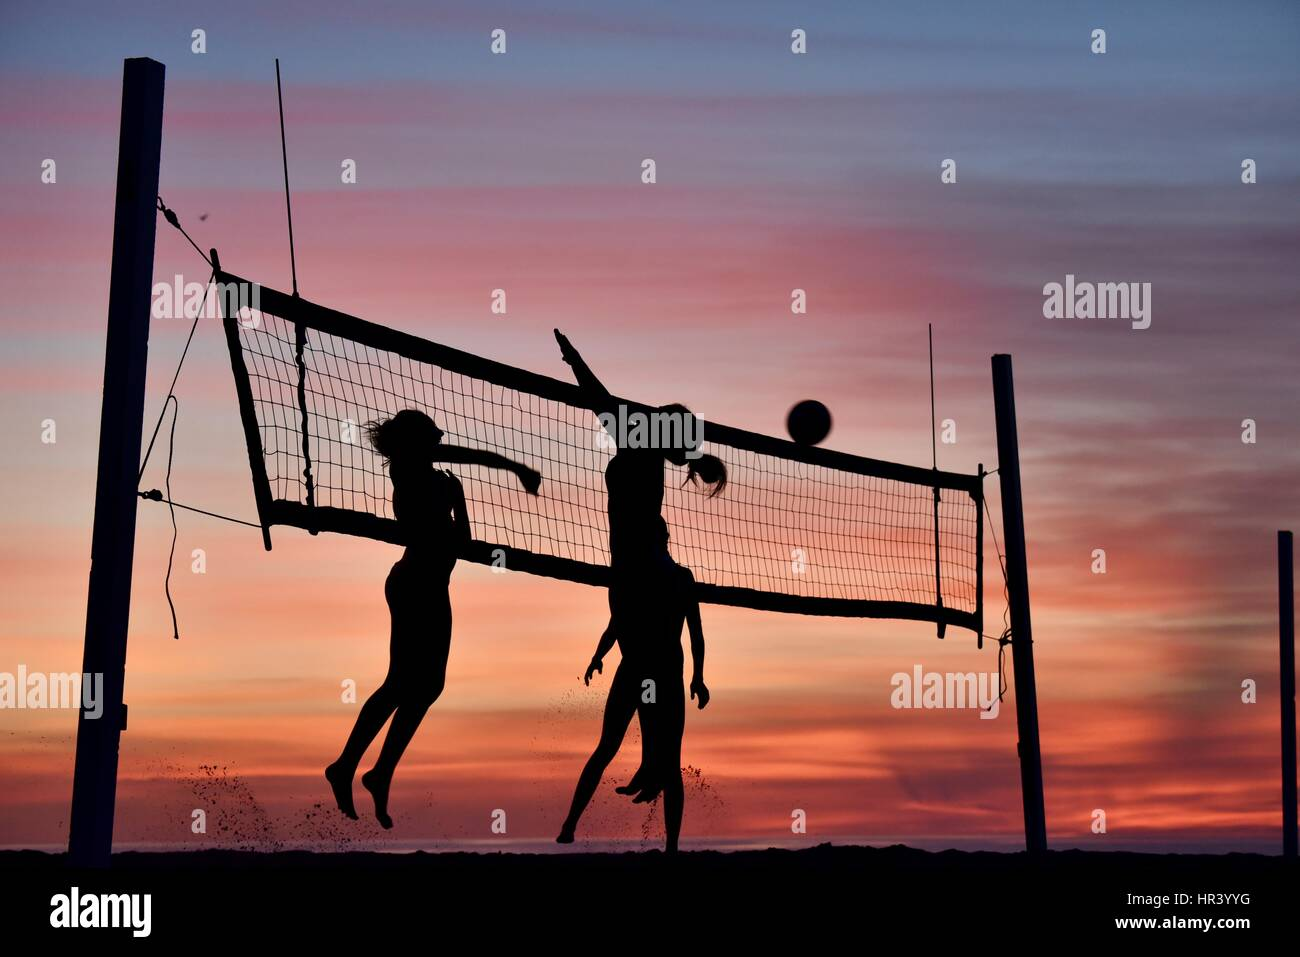 Silhouettes Of Female Volleyball Players Practicing